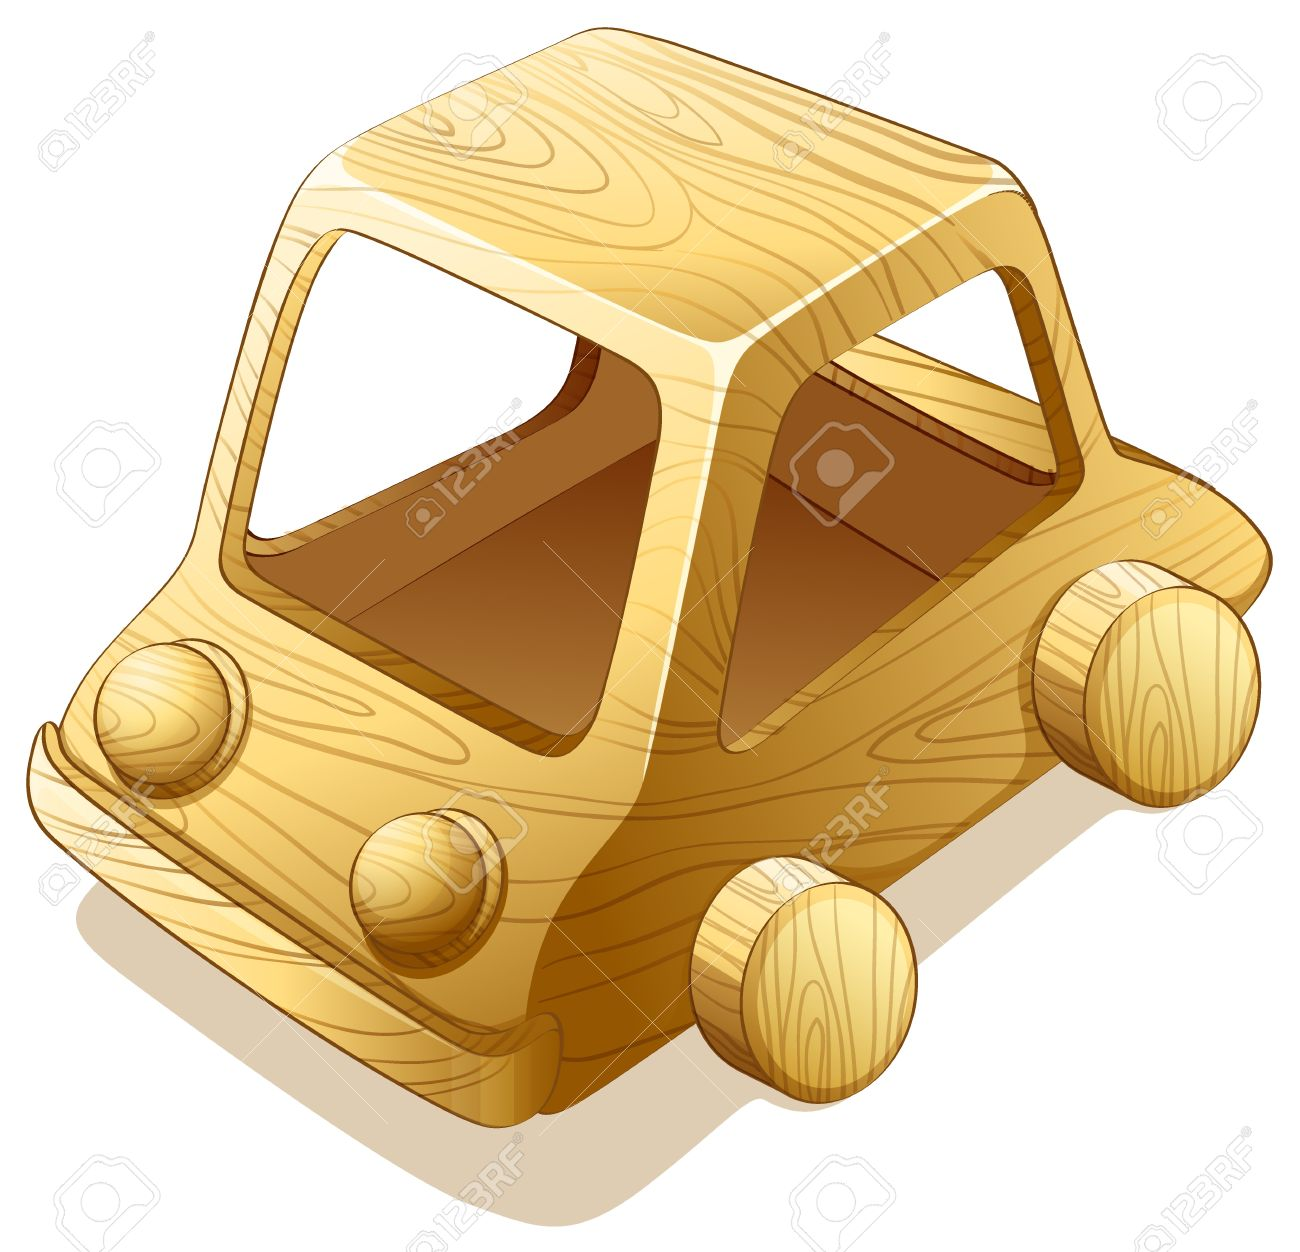 Illustration Of A Toy Wooden Car Royalty Free Cliparts, Vectors.